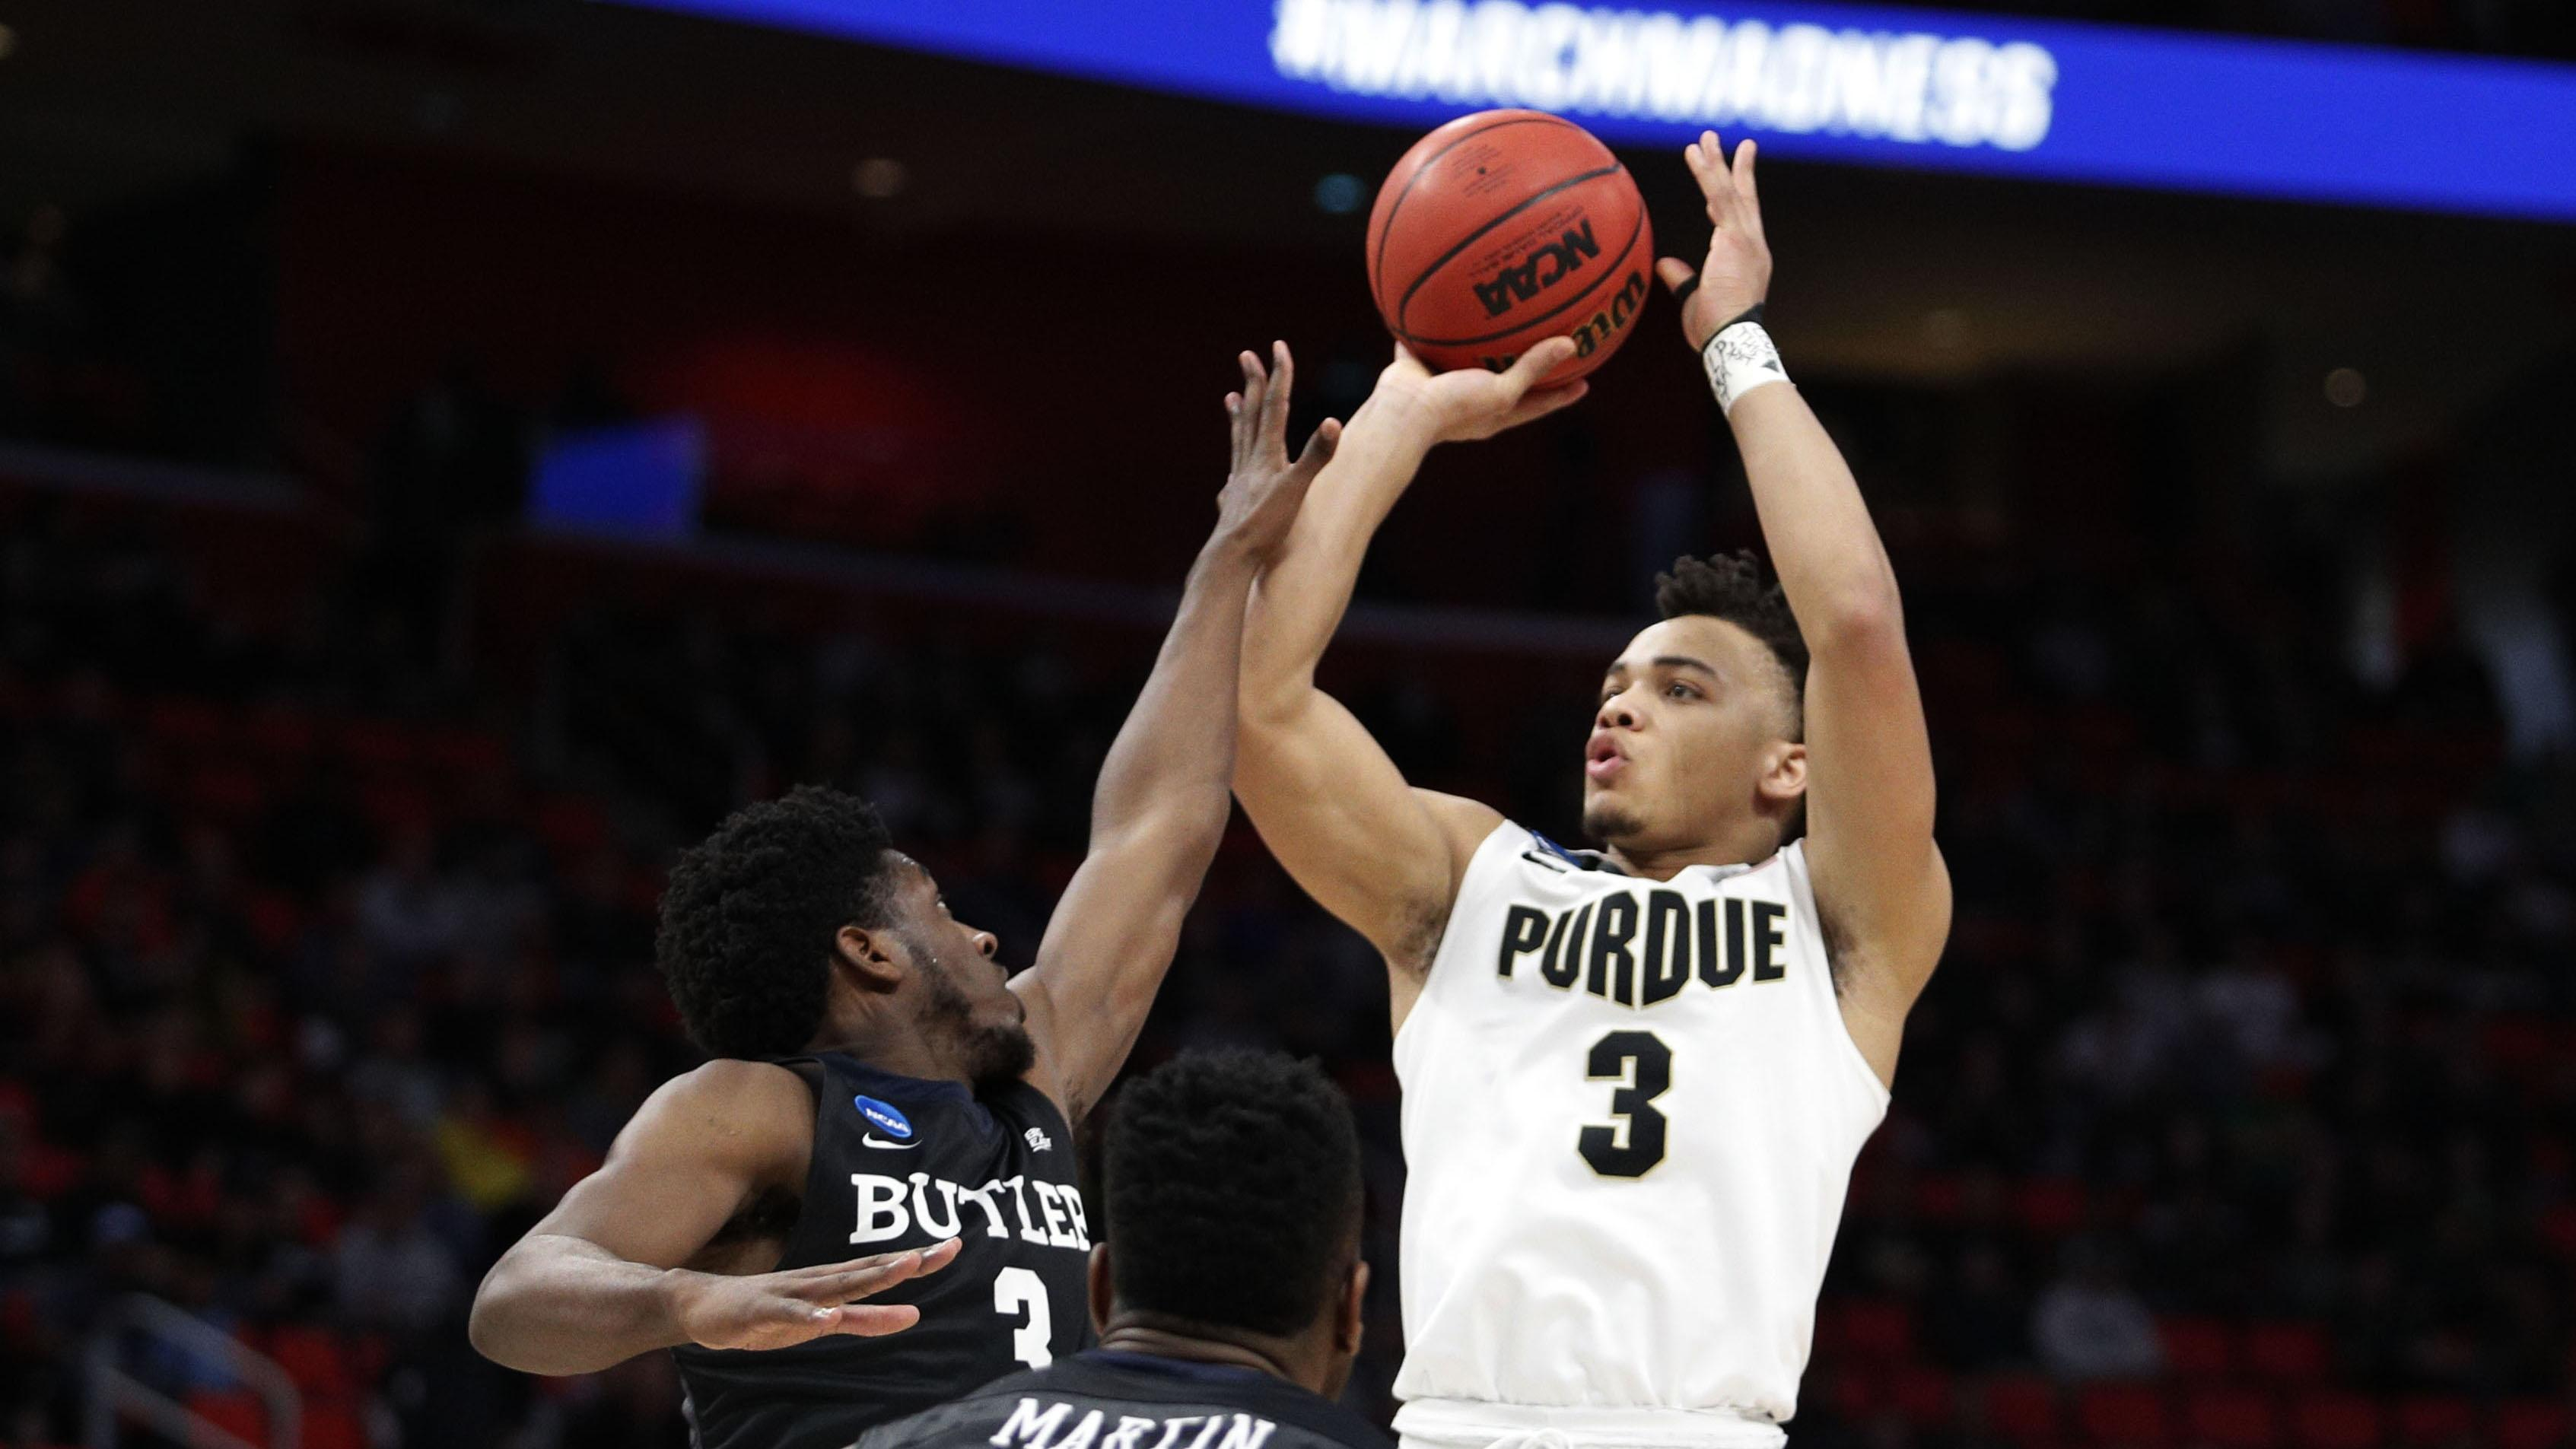 Purdue's Carsen Edwards shoots over Butler's Kamar Baldwin